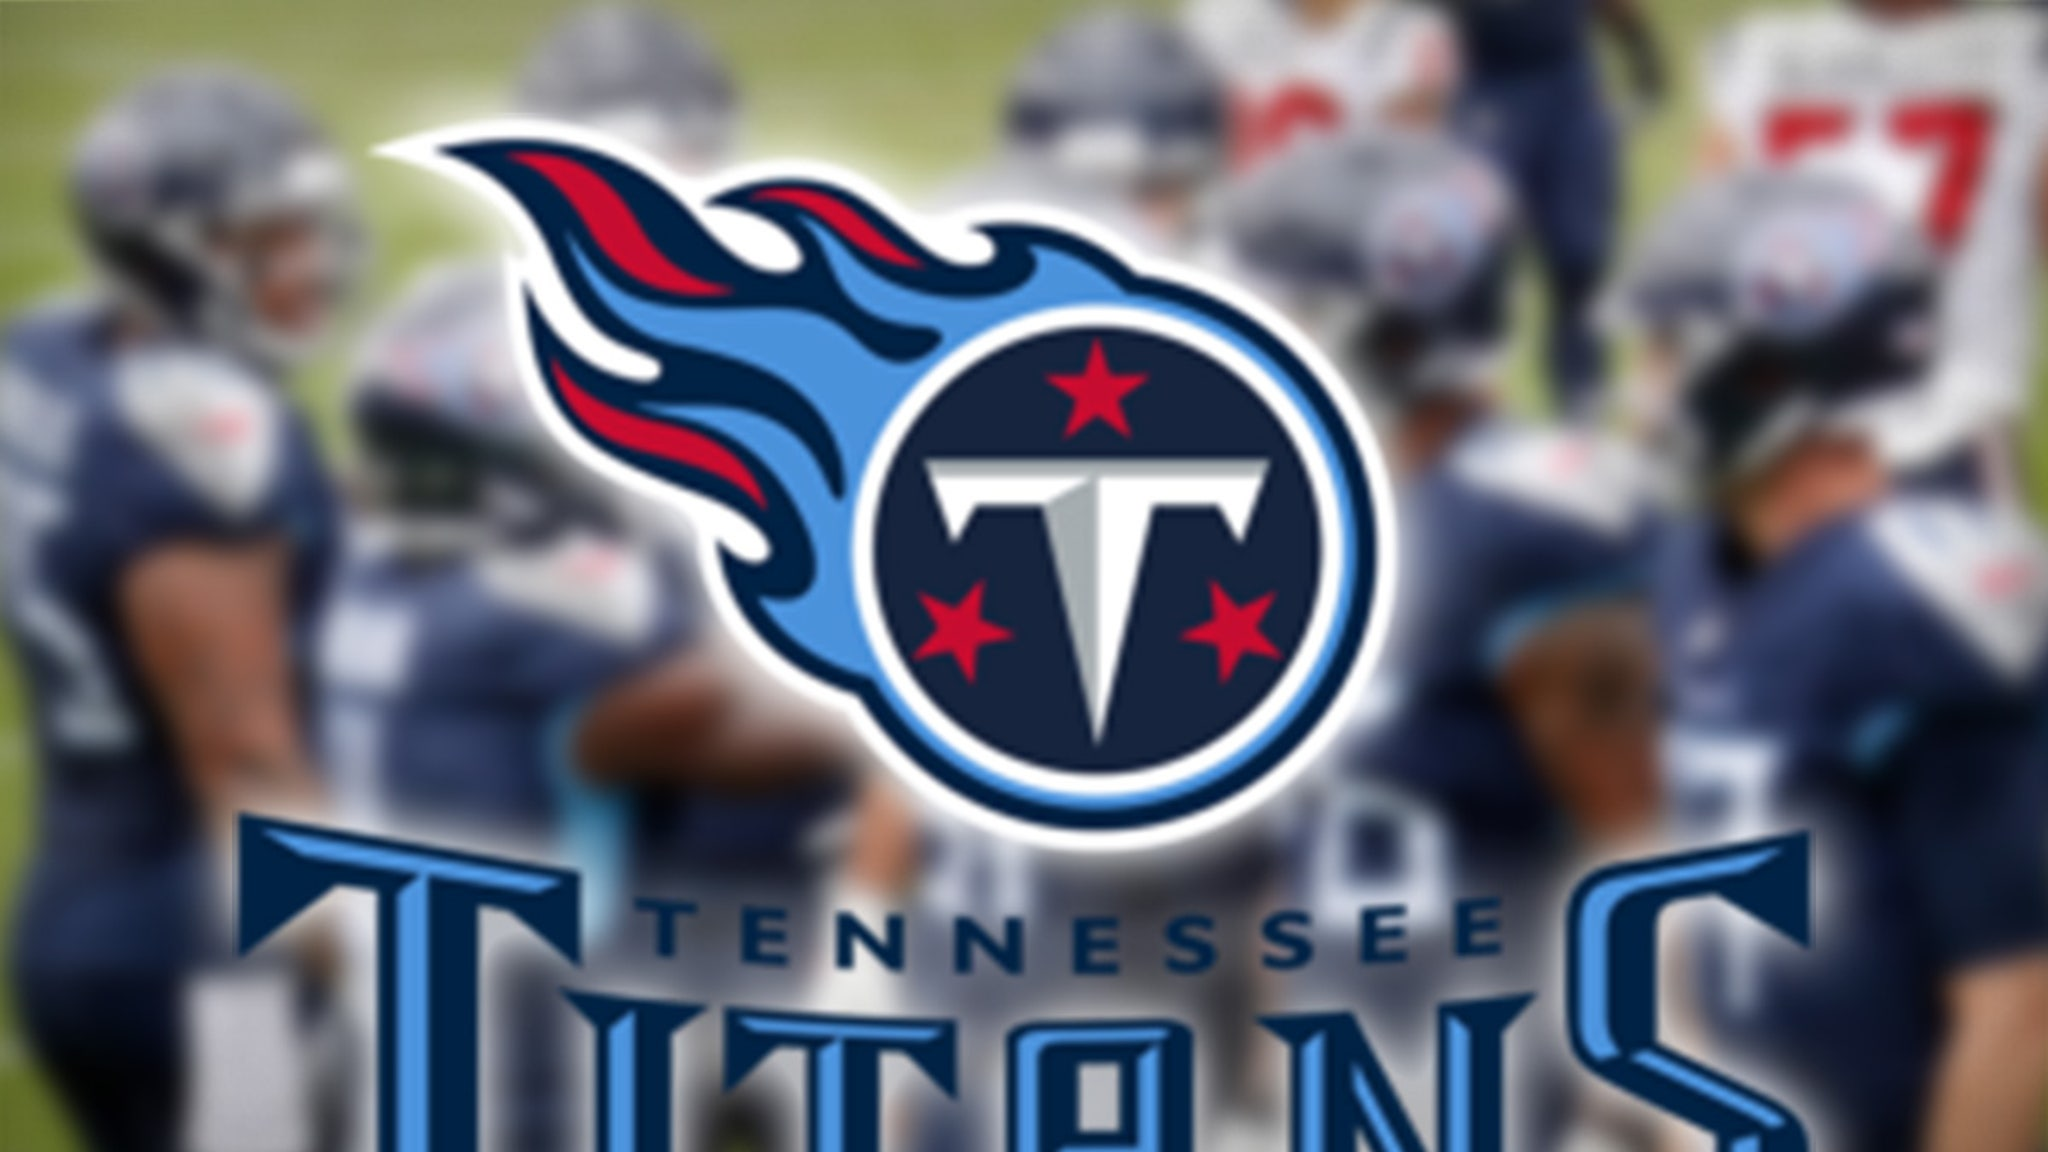 Tennessee Titans Expecting Slap on the Wrist Punishment ... After COVID Outbreak